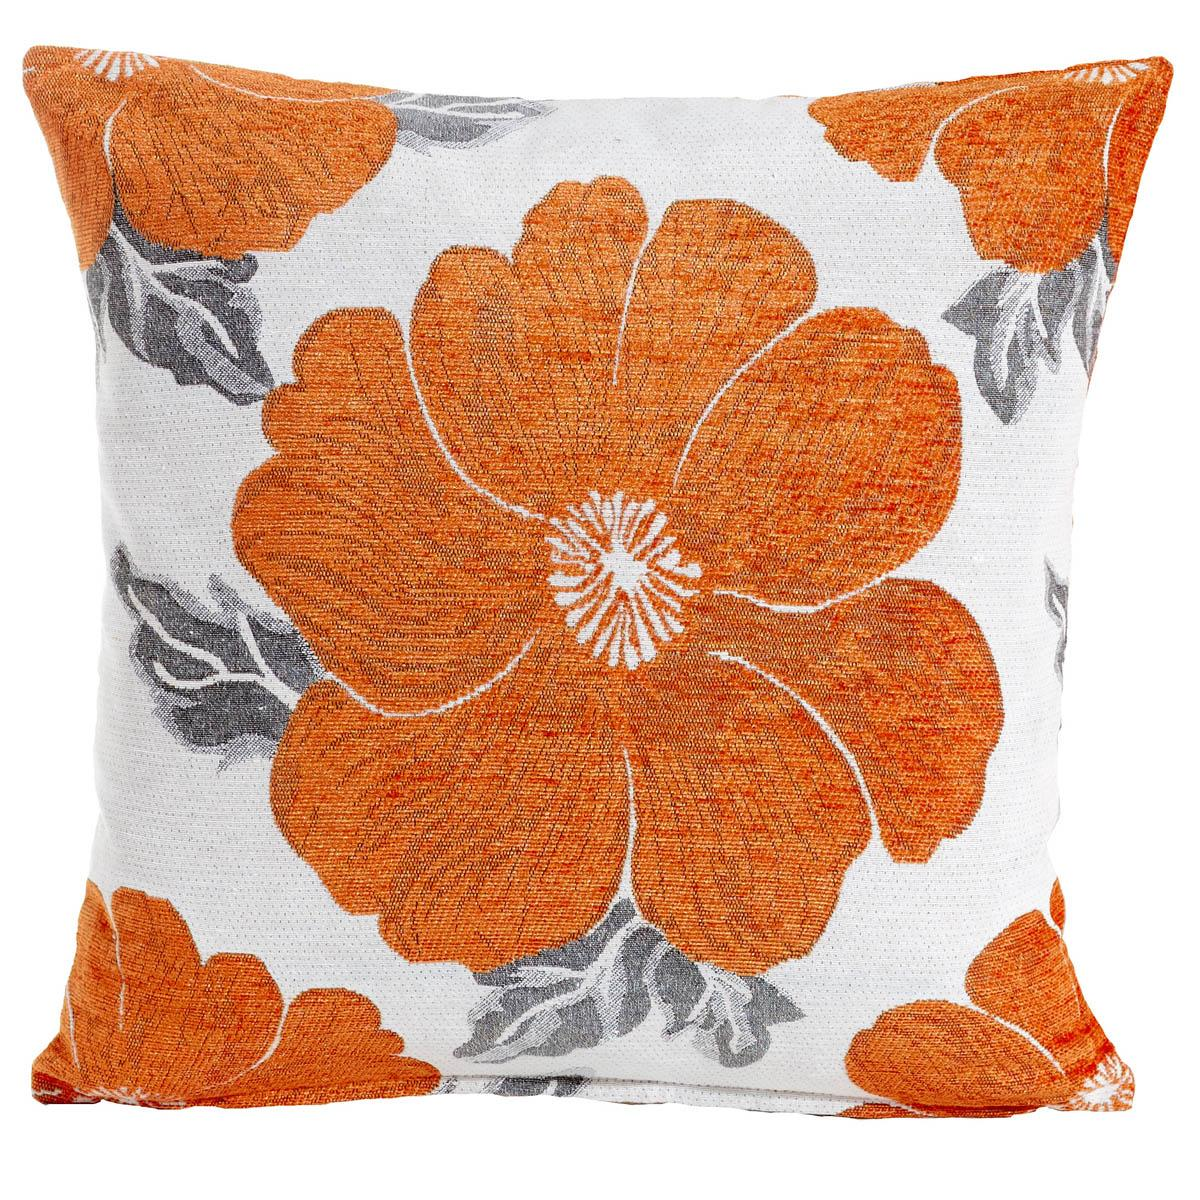 Alan Symonds Cushions And Throws Poppy Chenille CC Orange Picture